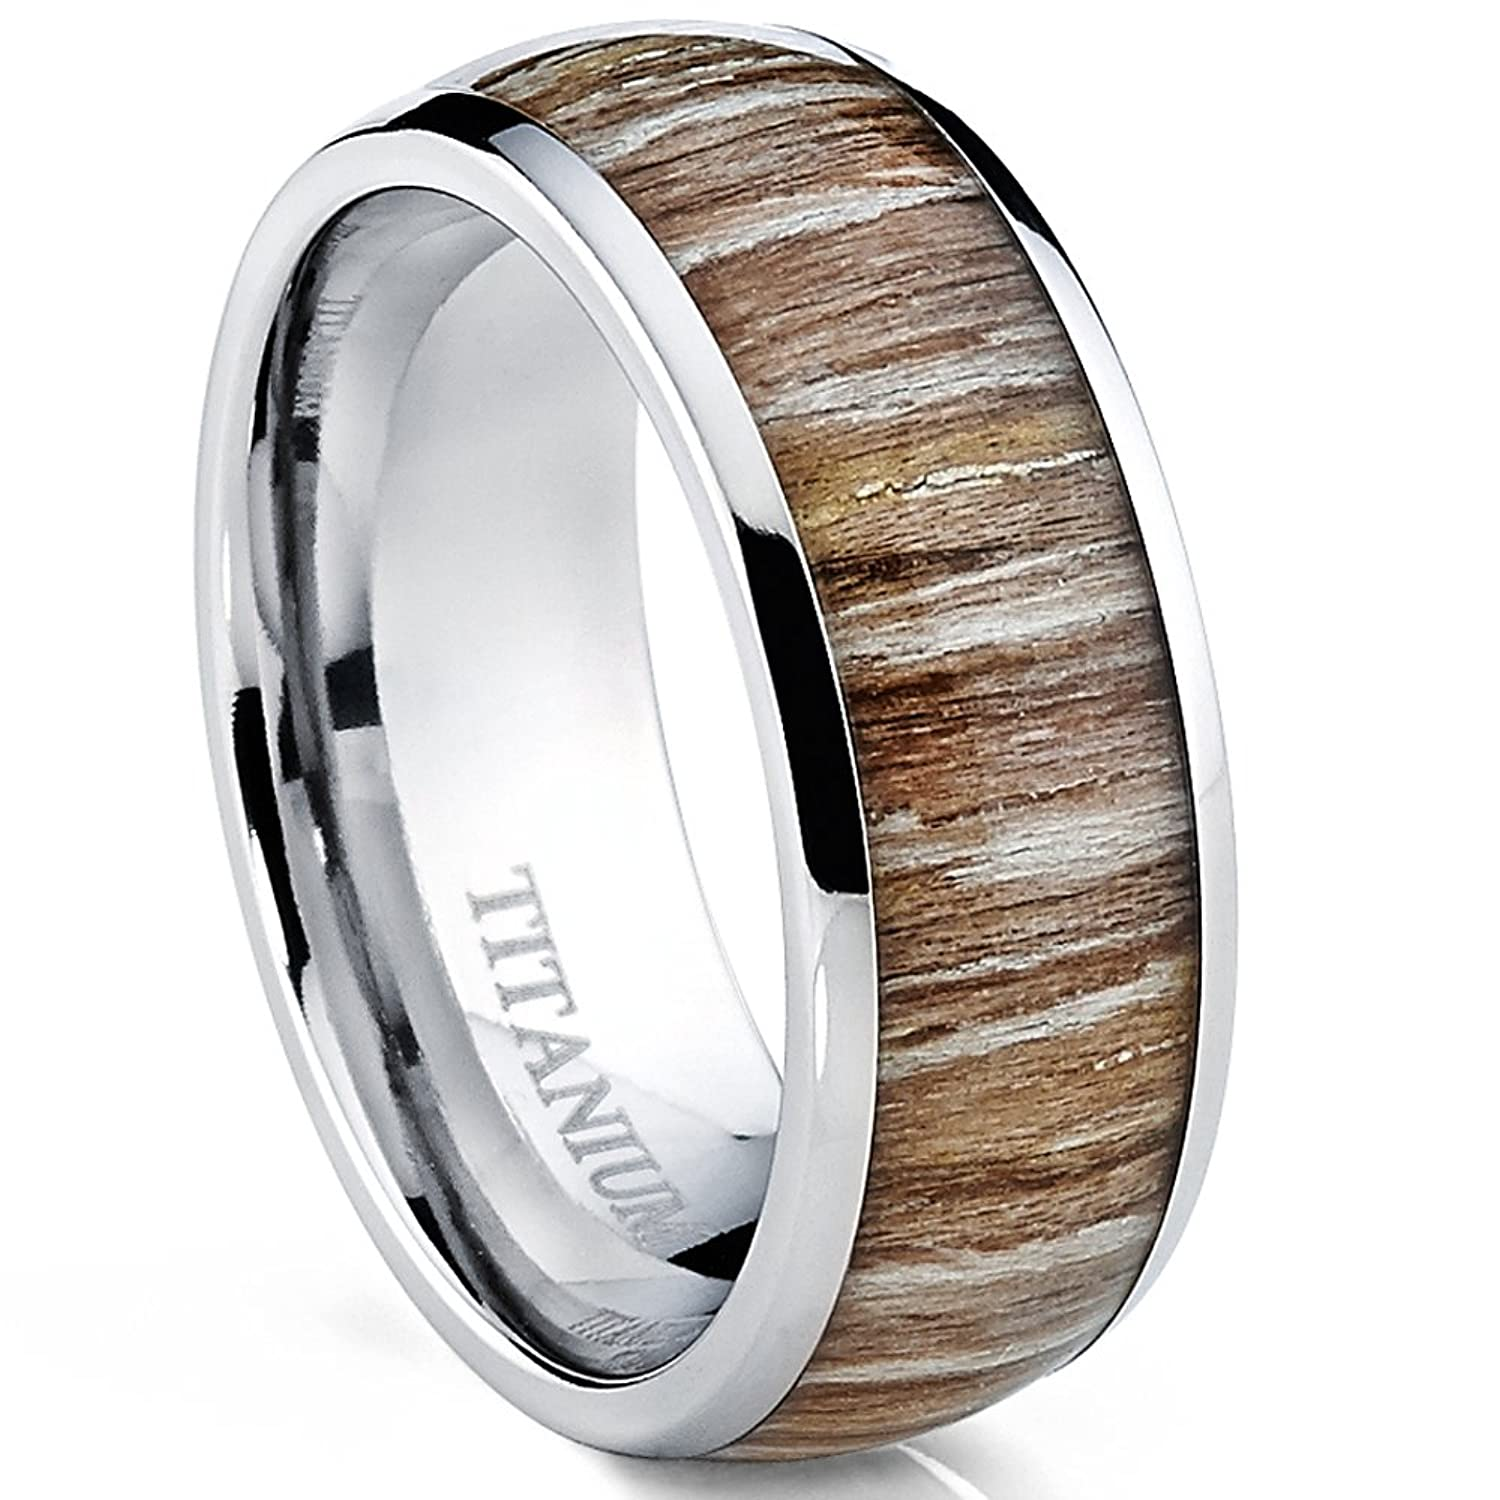 Titanium Ring Wedding Band  Engagement Ring with Real Wood Inlay  8mm  Comfort Fit Sizes 6 to 13   Amazon comTitanium Ring Wedding Band  Engagement Ring with Real Wood Inlay  . Inlay Wedding Bands. Home Design Ideas